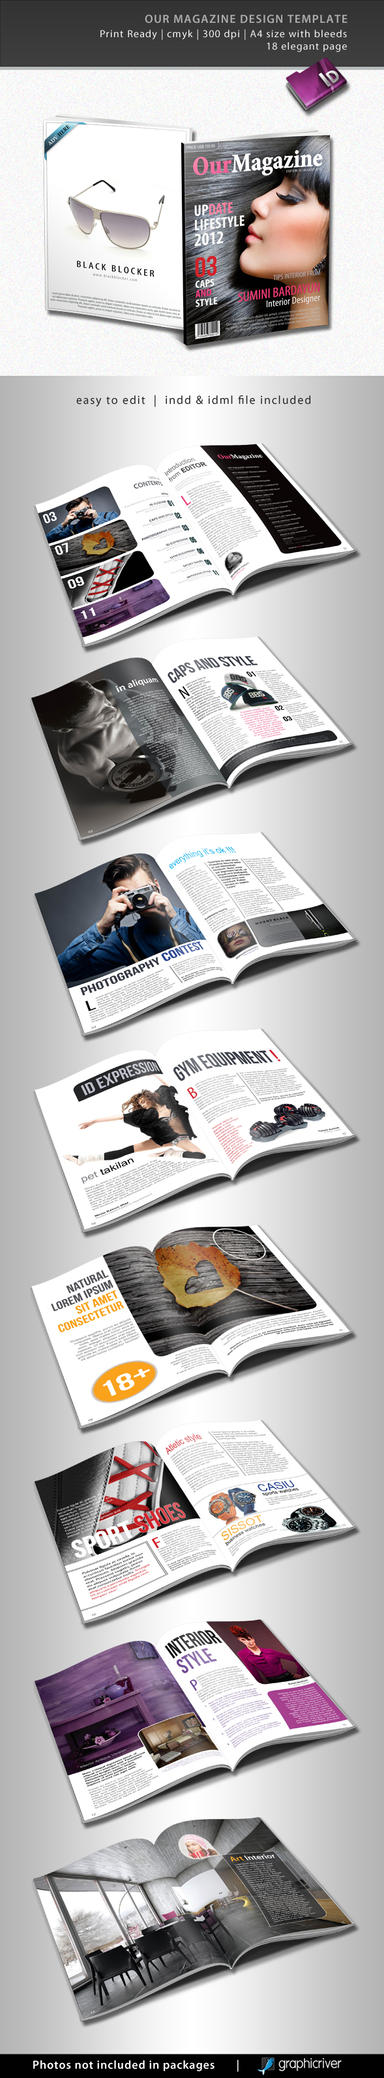 Our Magazine Template by semutireng46